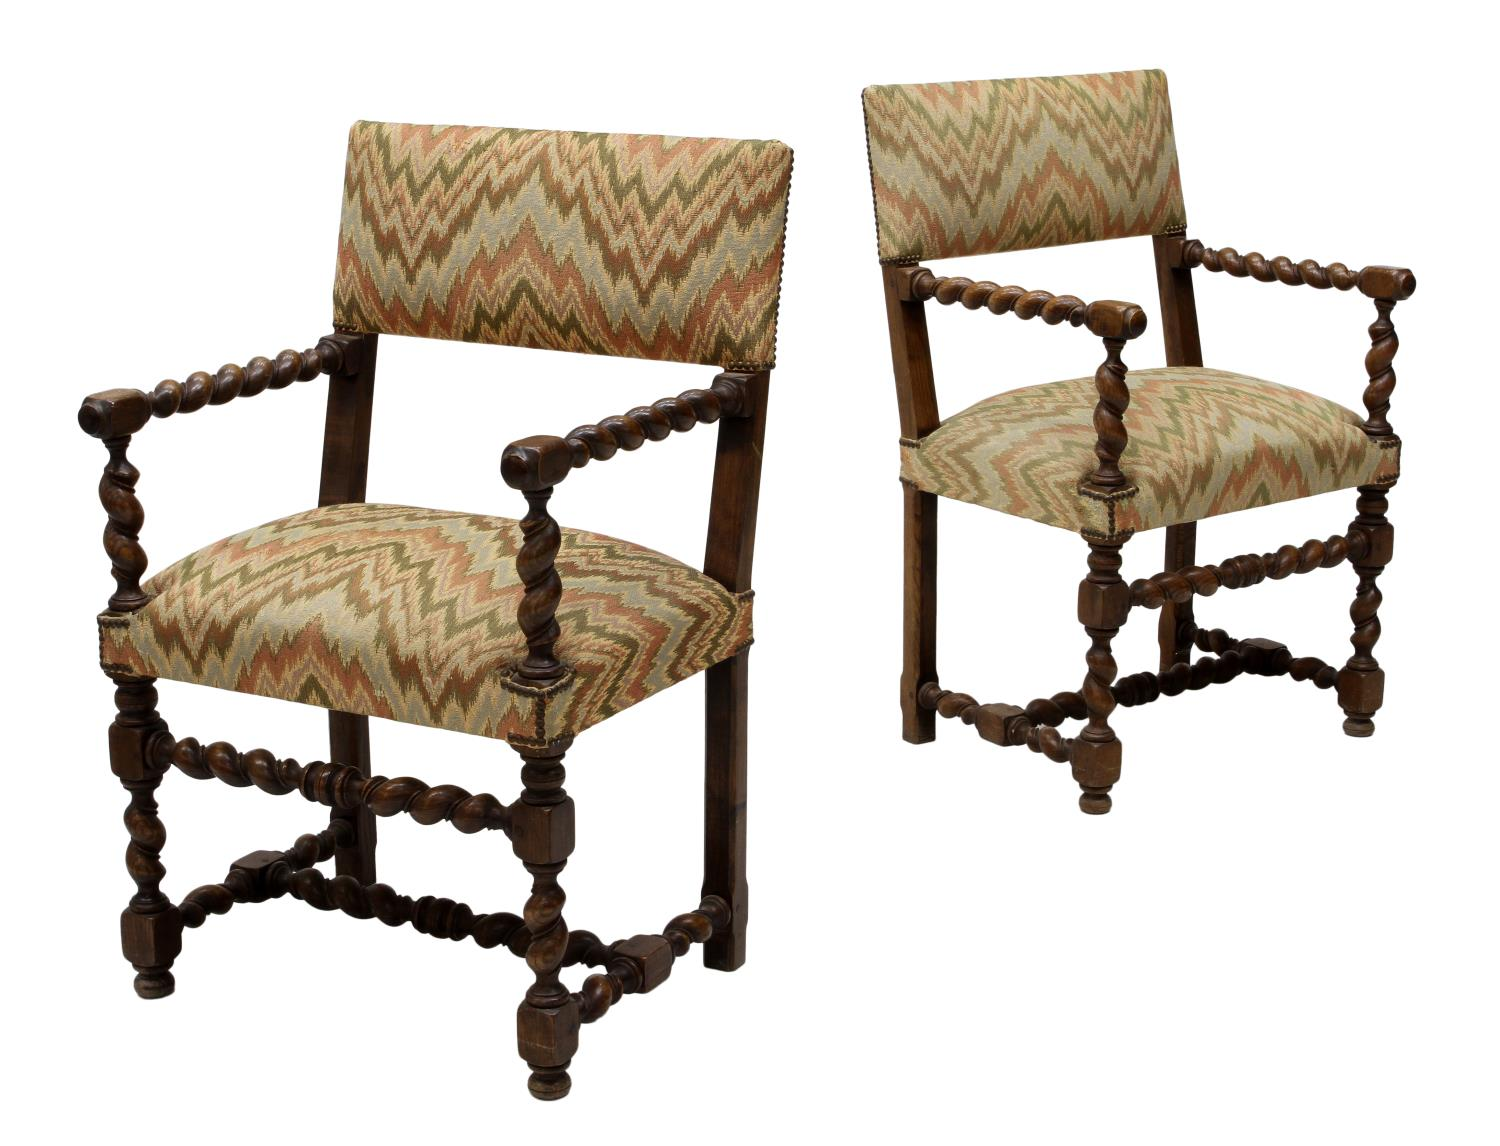 barley twist chair elephant rocking 2 arm chairs important two day auction